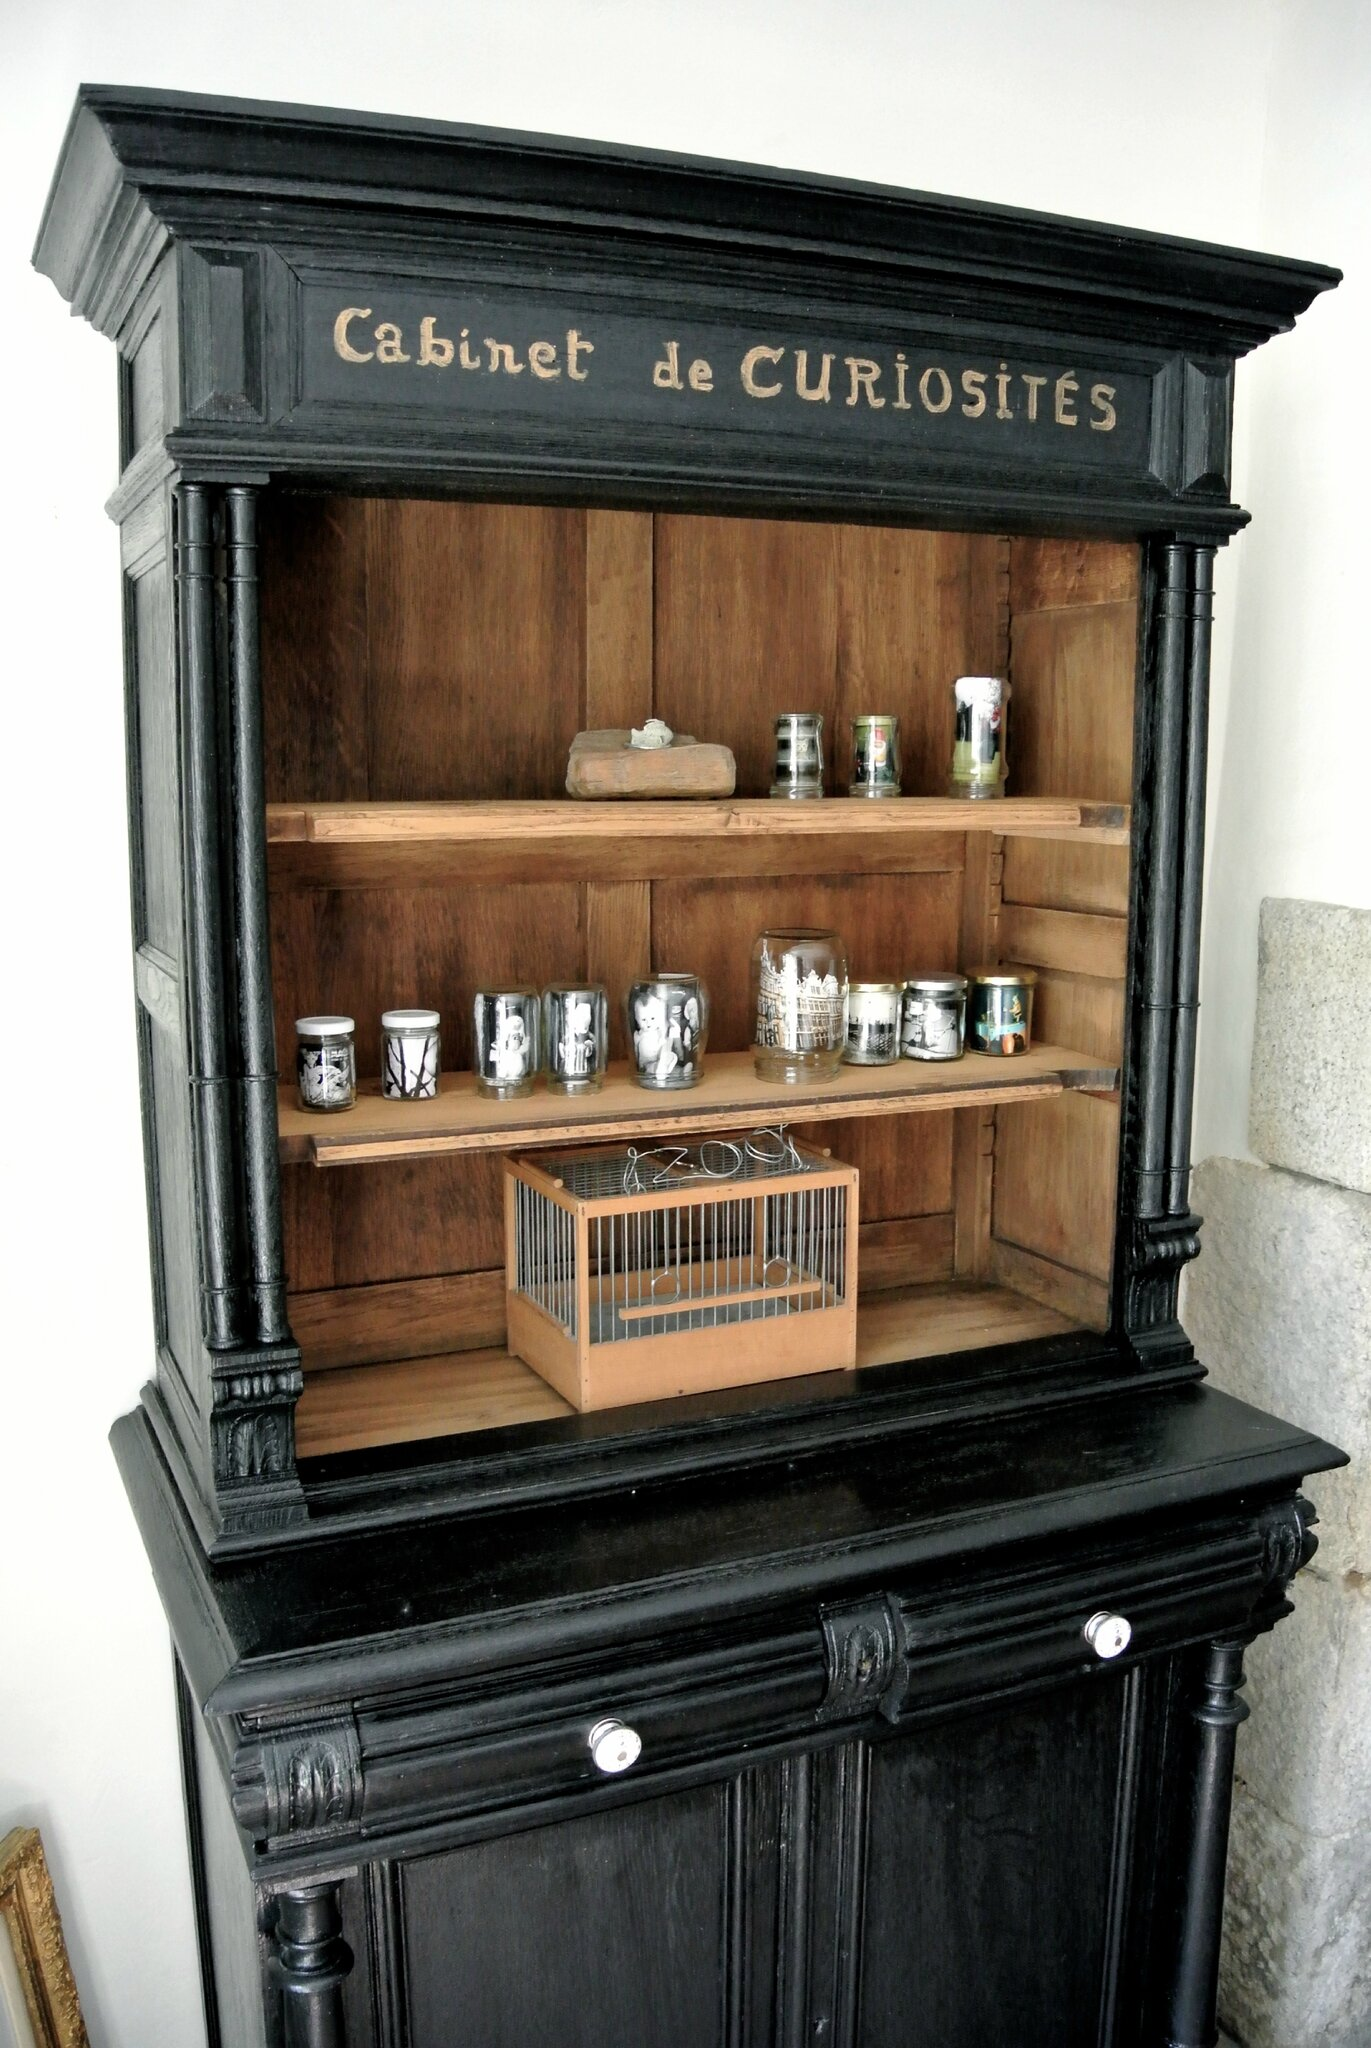 Cabinet de curiosit dr le meuble du photographe photo for Cabinet de curiosite meuble